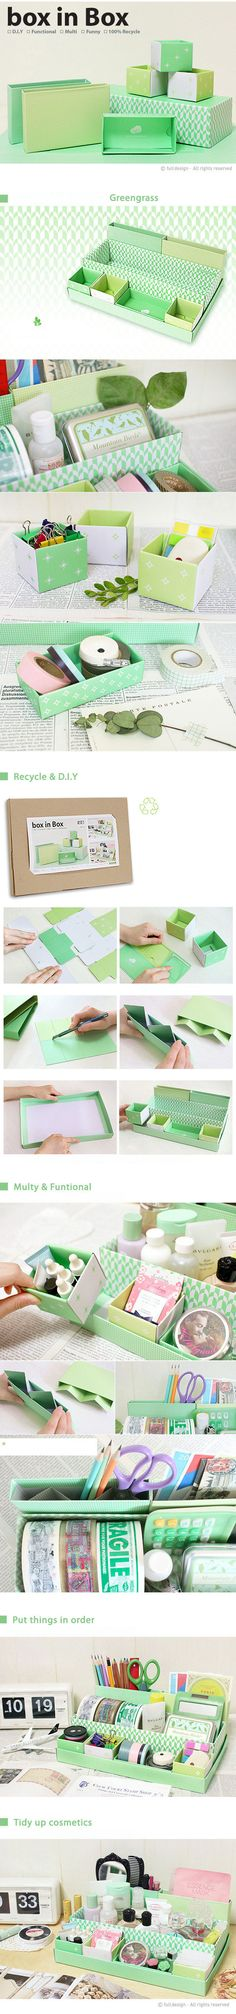 diy box Cardboard recycling, cover with material or paper to create stationary/desk organisation (just like as a kid Blue Peter style! Diy Organisation, Storage Organization, Organizing, Storage Boxes, Storage Ideas, Diy Projects To Try, Craft Projects, Diy Paper, Paper Crafts